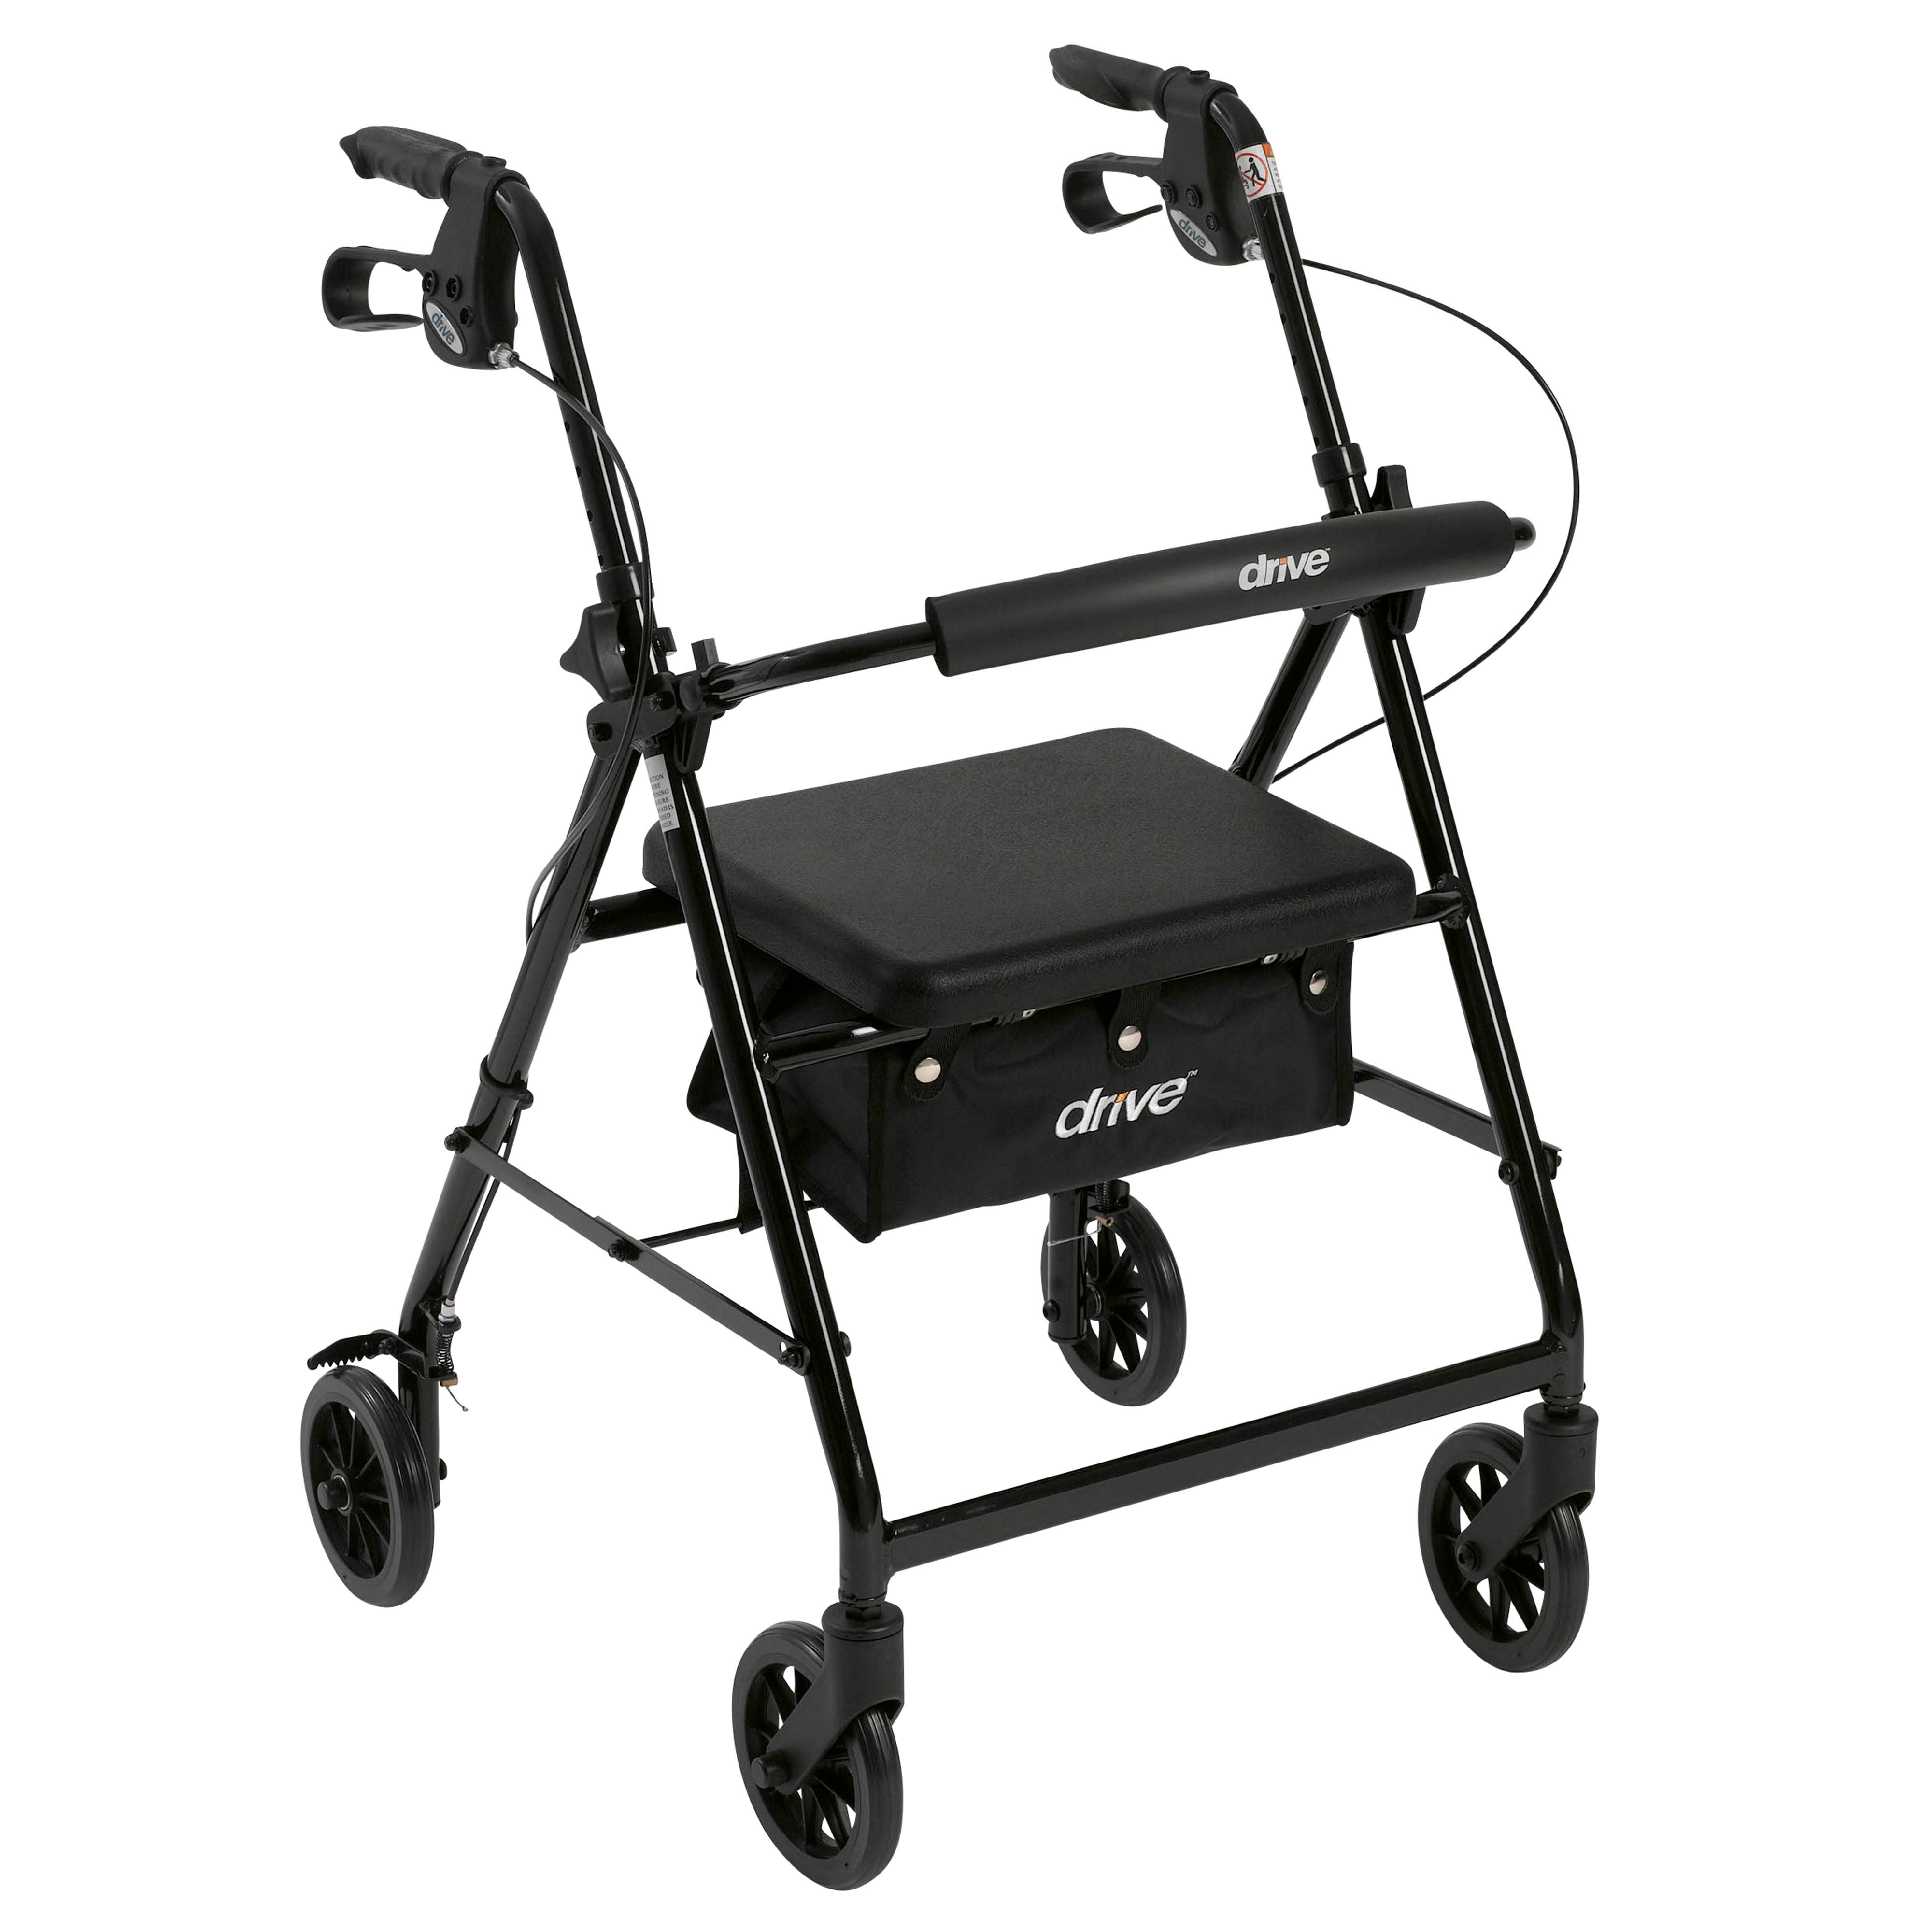 Drive 4-Wheel Rollator Walker with Fold Up and Removable Back